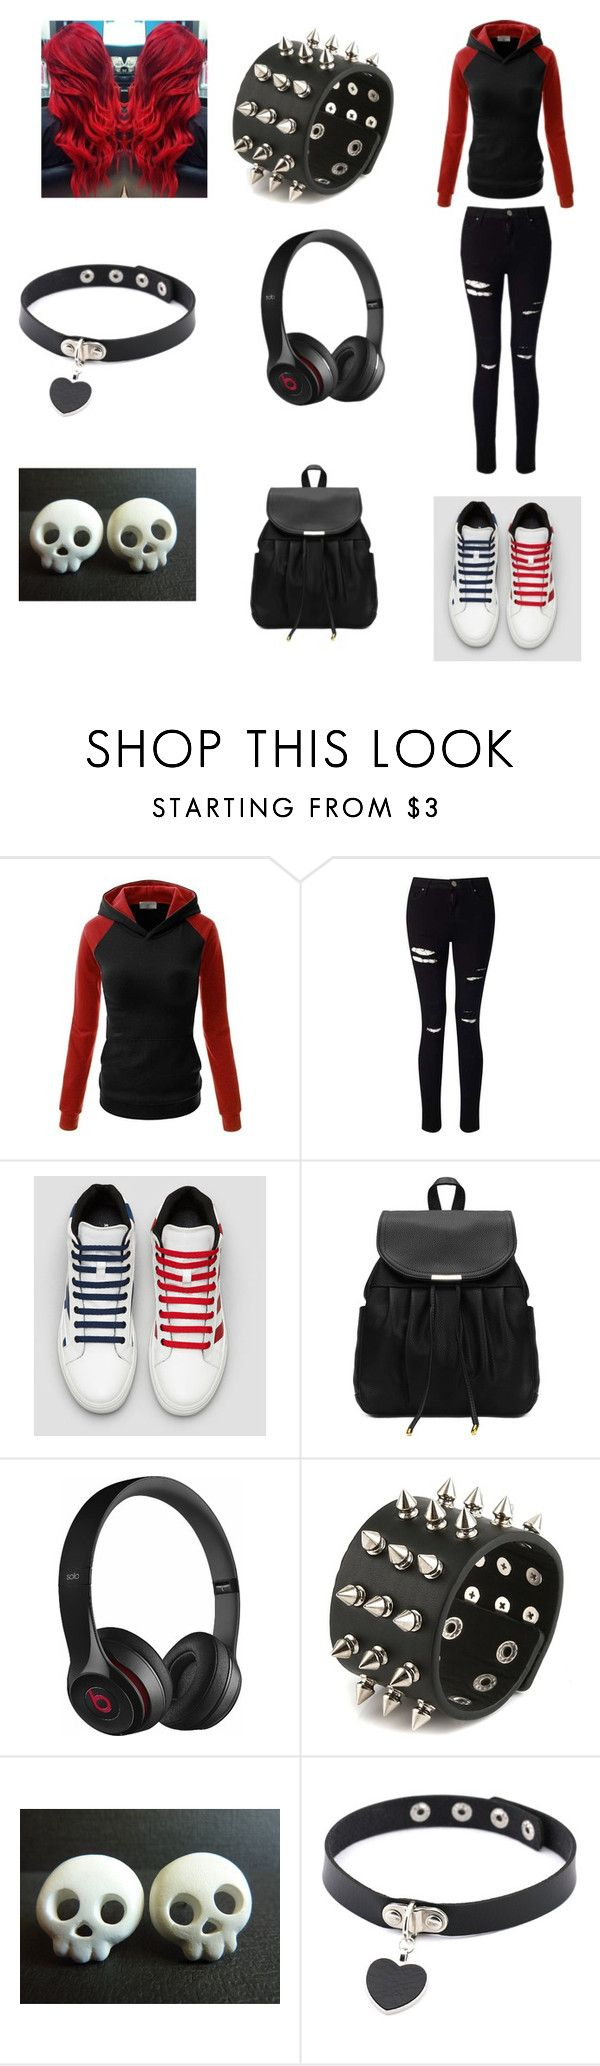 """outfit #8"" by katerinaxen on Polyvore featuring Miss Selfridge and Beats by Dr. Dre"